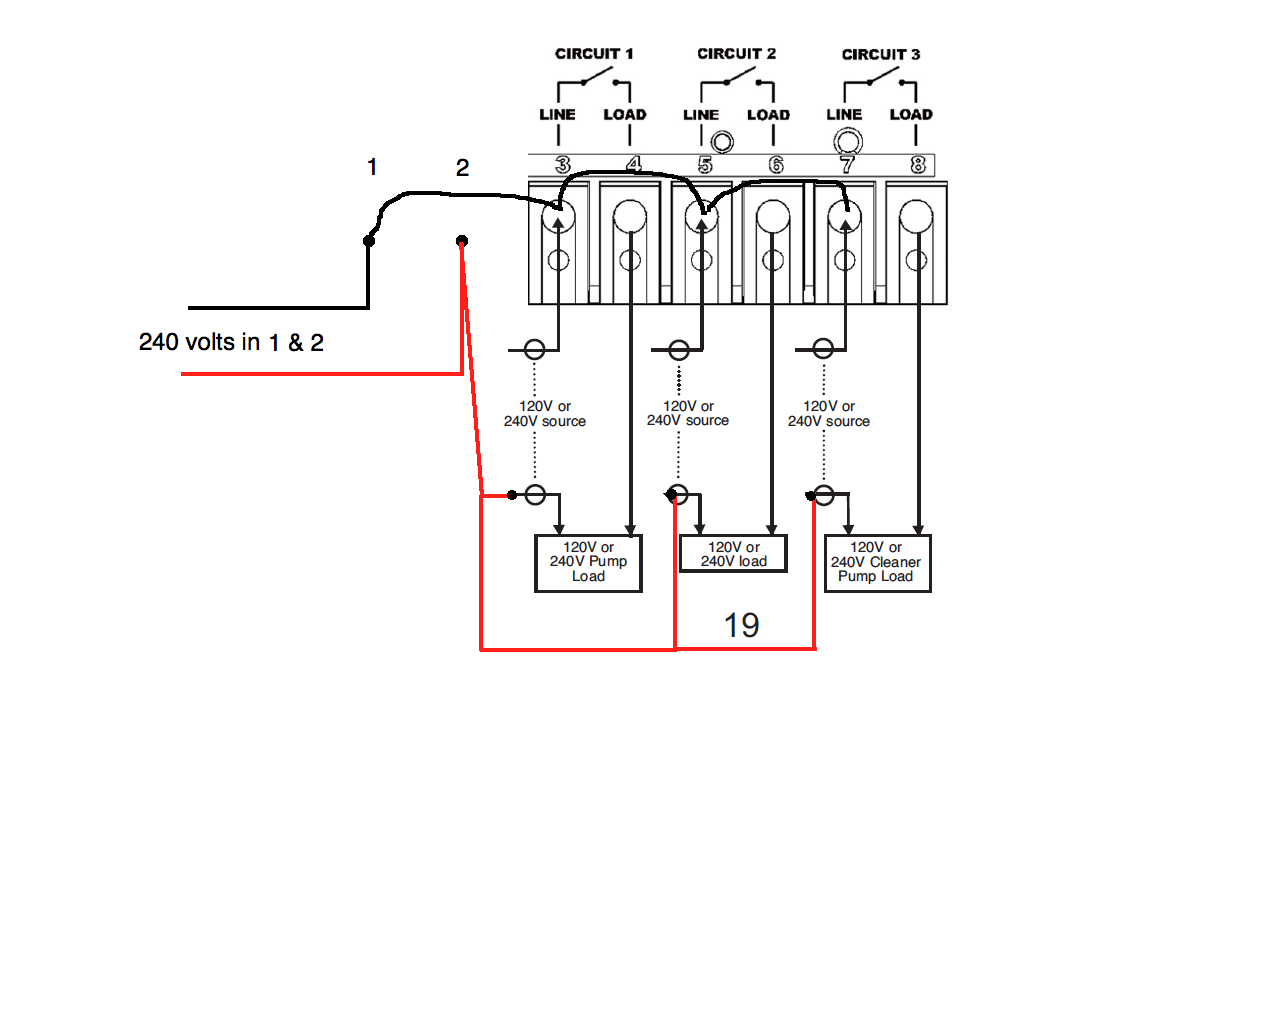 wiring diagram for 120v photocell wiring image intermatic photocell wiring diagram diagram on wiring diagram for 120v photocell